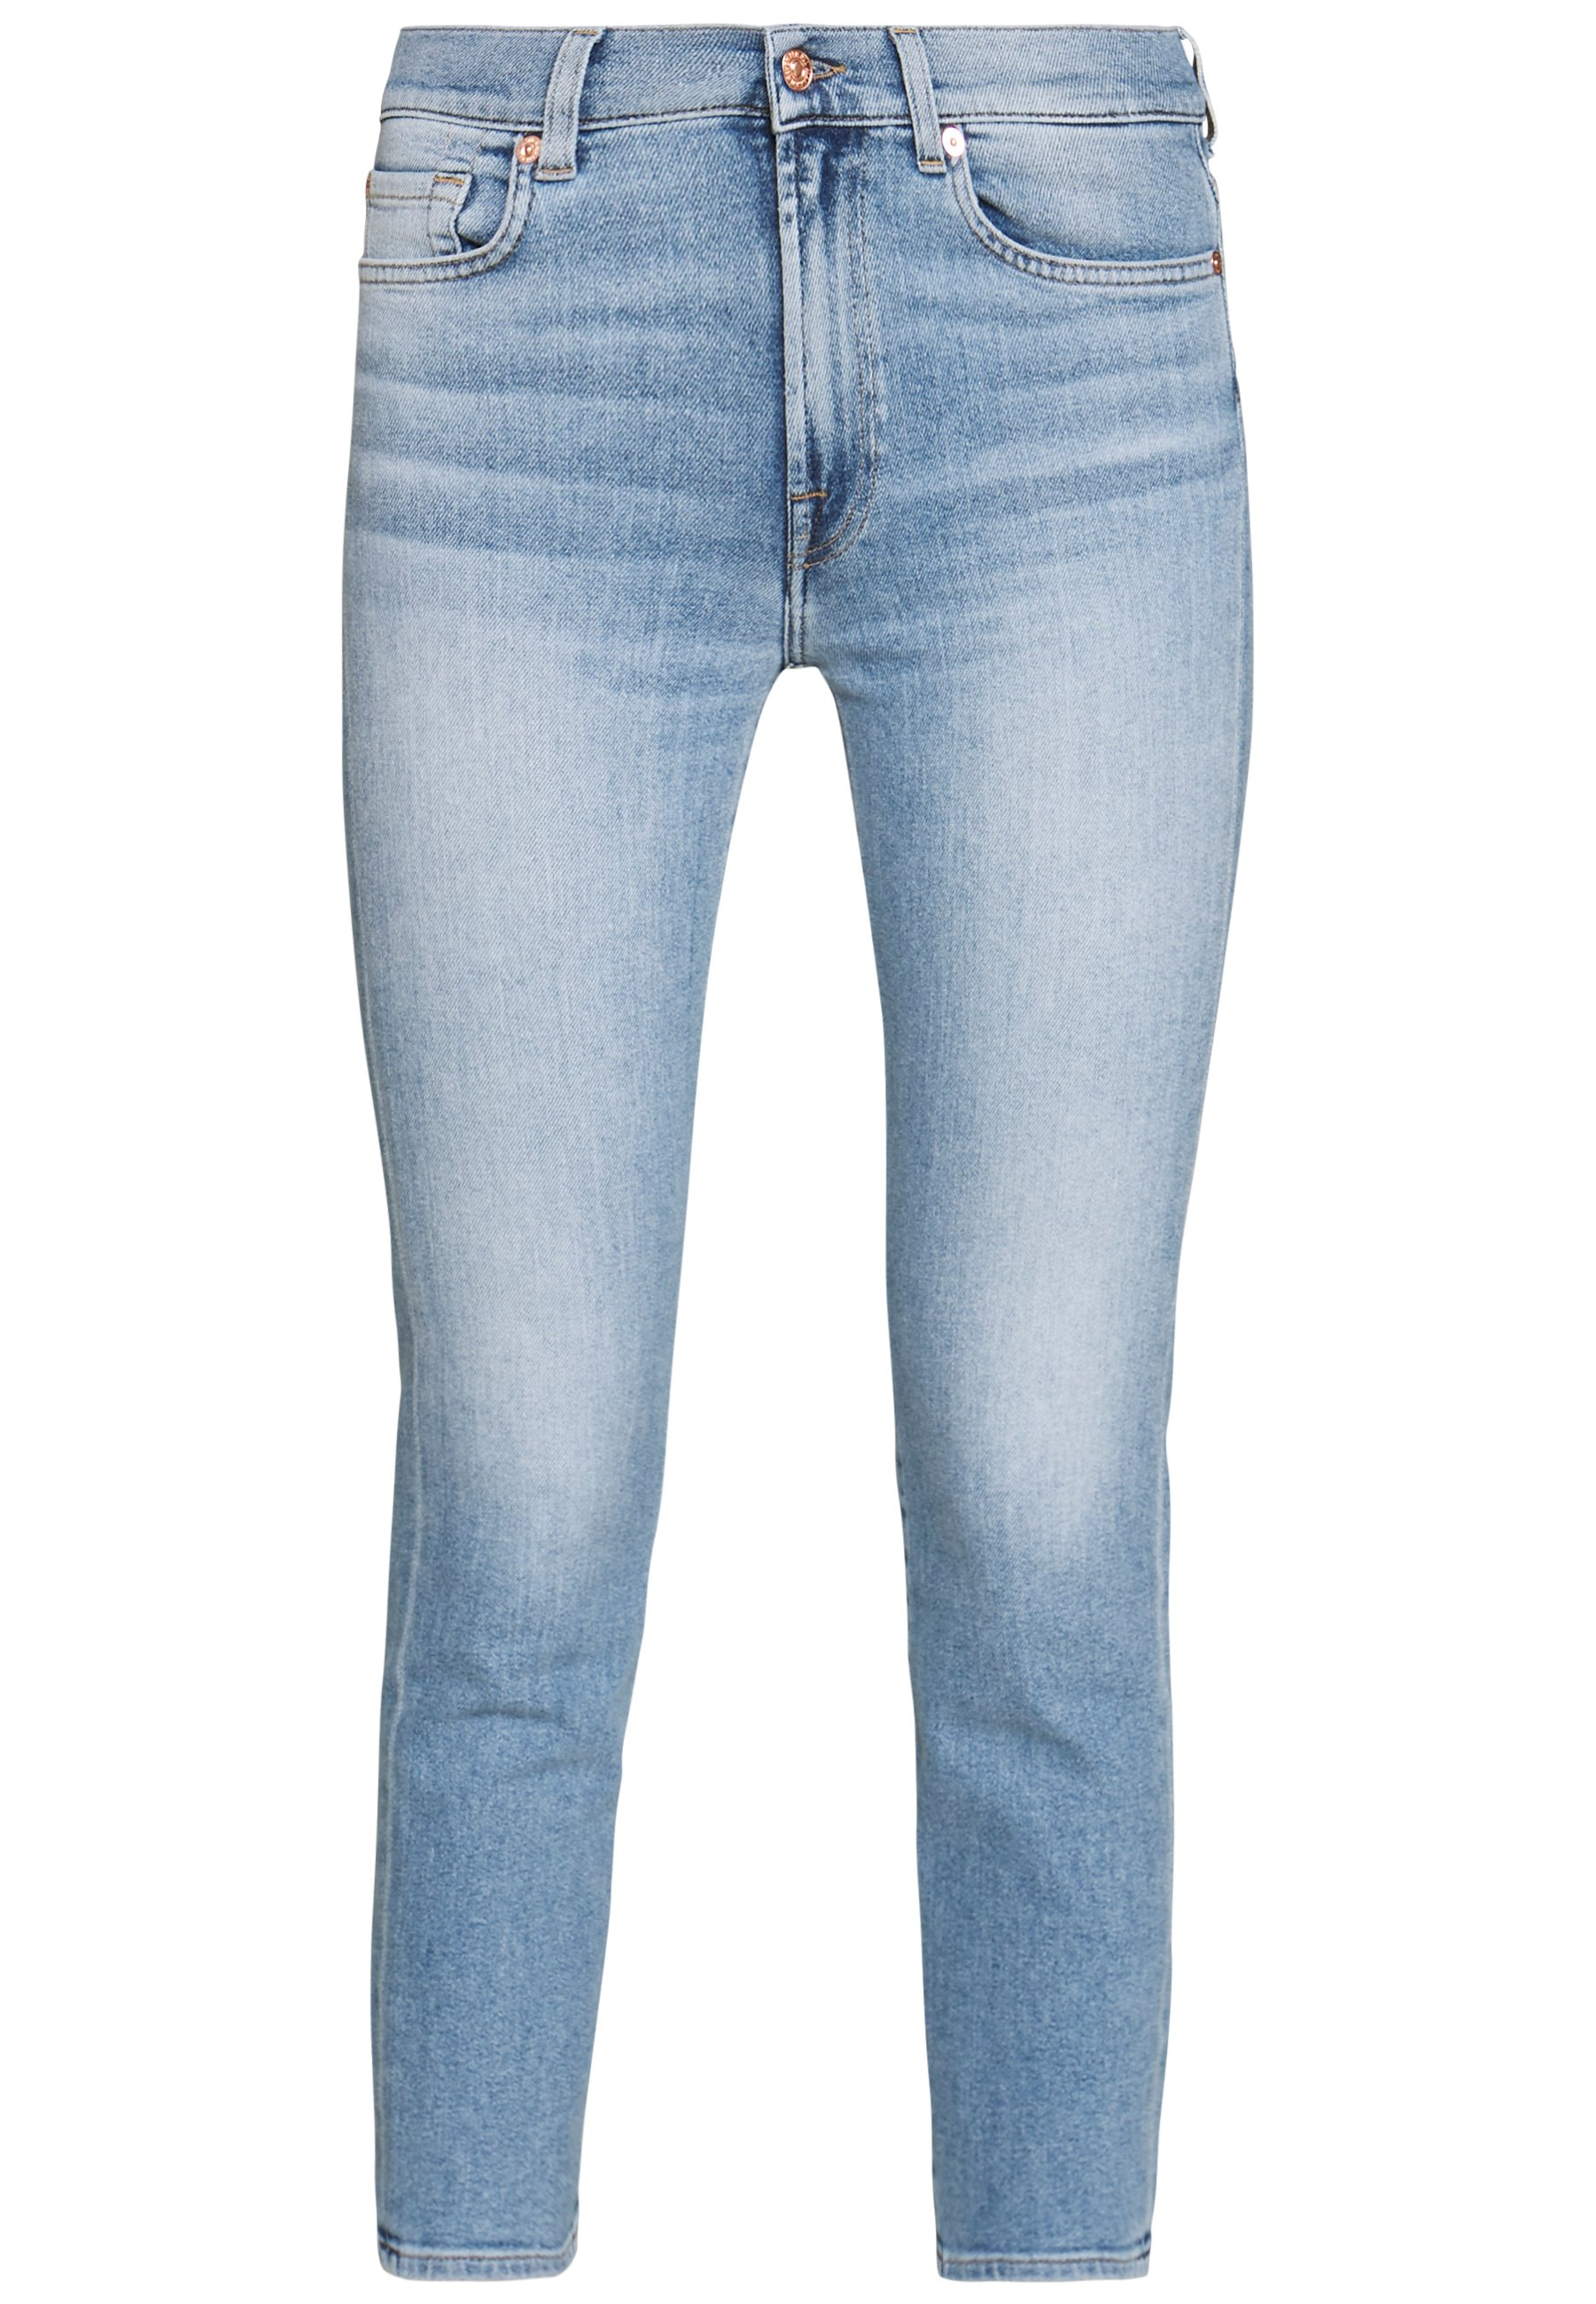 7 For All Mankind Roxanne - Jeans Skinny Fit Blue Black Friday